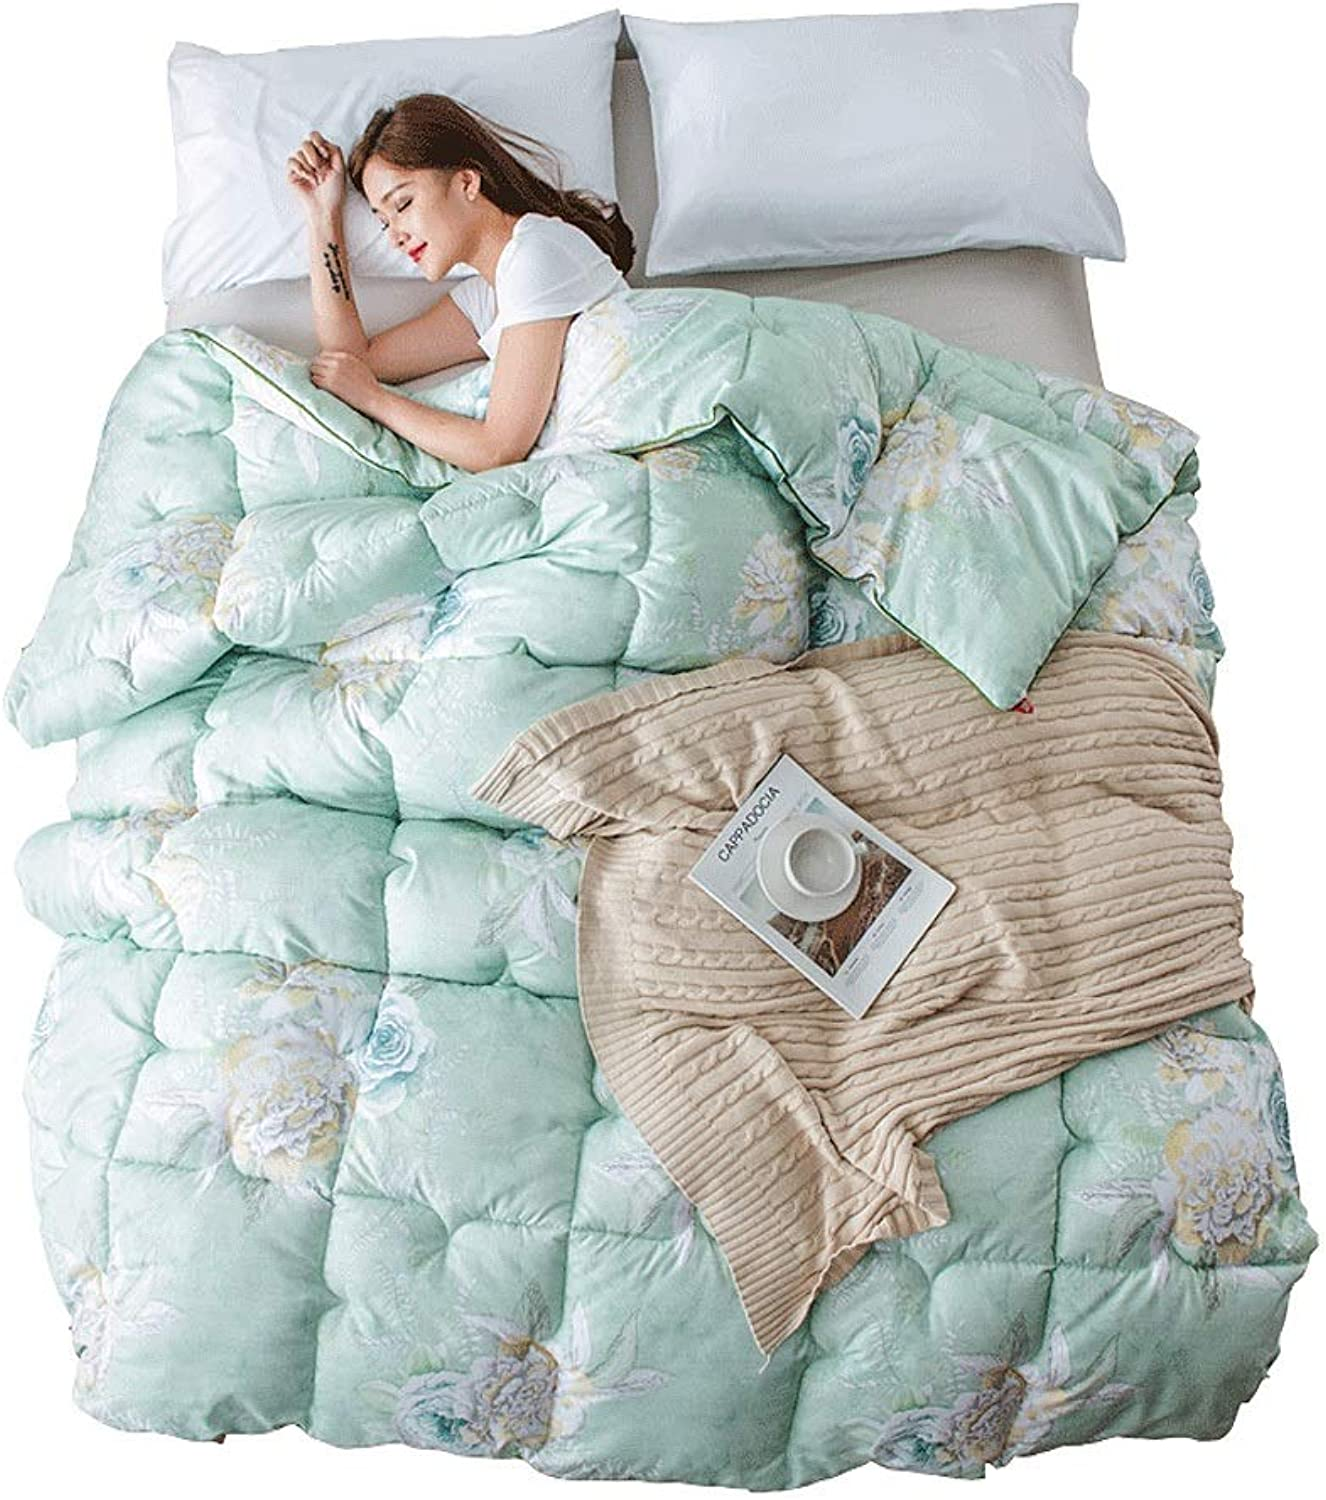 Quilt Green Cotton Quilted Comforter with Corner Tabs Cotton Fabrics Thicken Warm and Soft for All Season All-Season Quilted Comforte Rhypoallergenic (Size   220cmx240cm3.5kg)